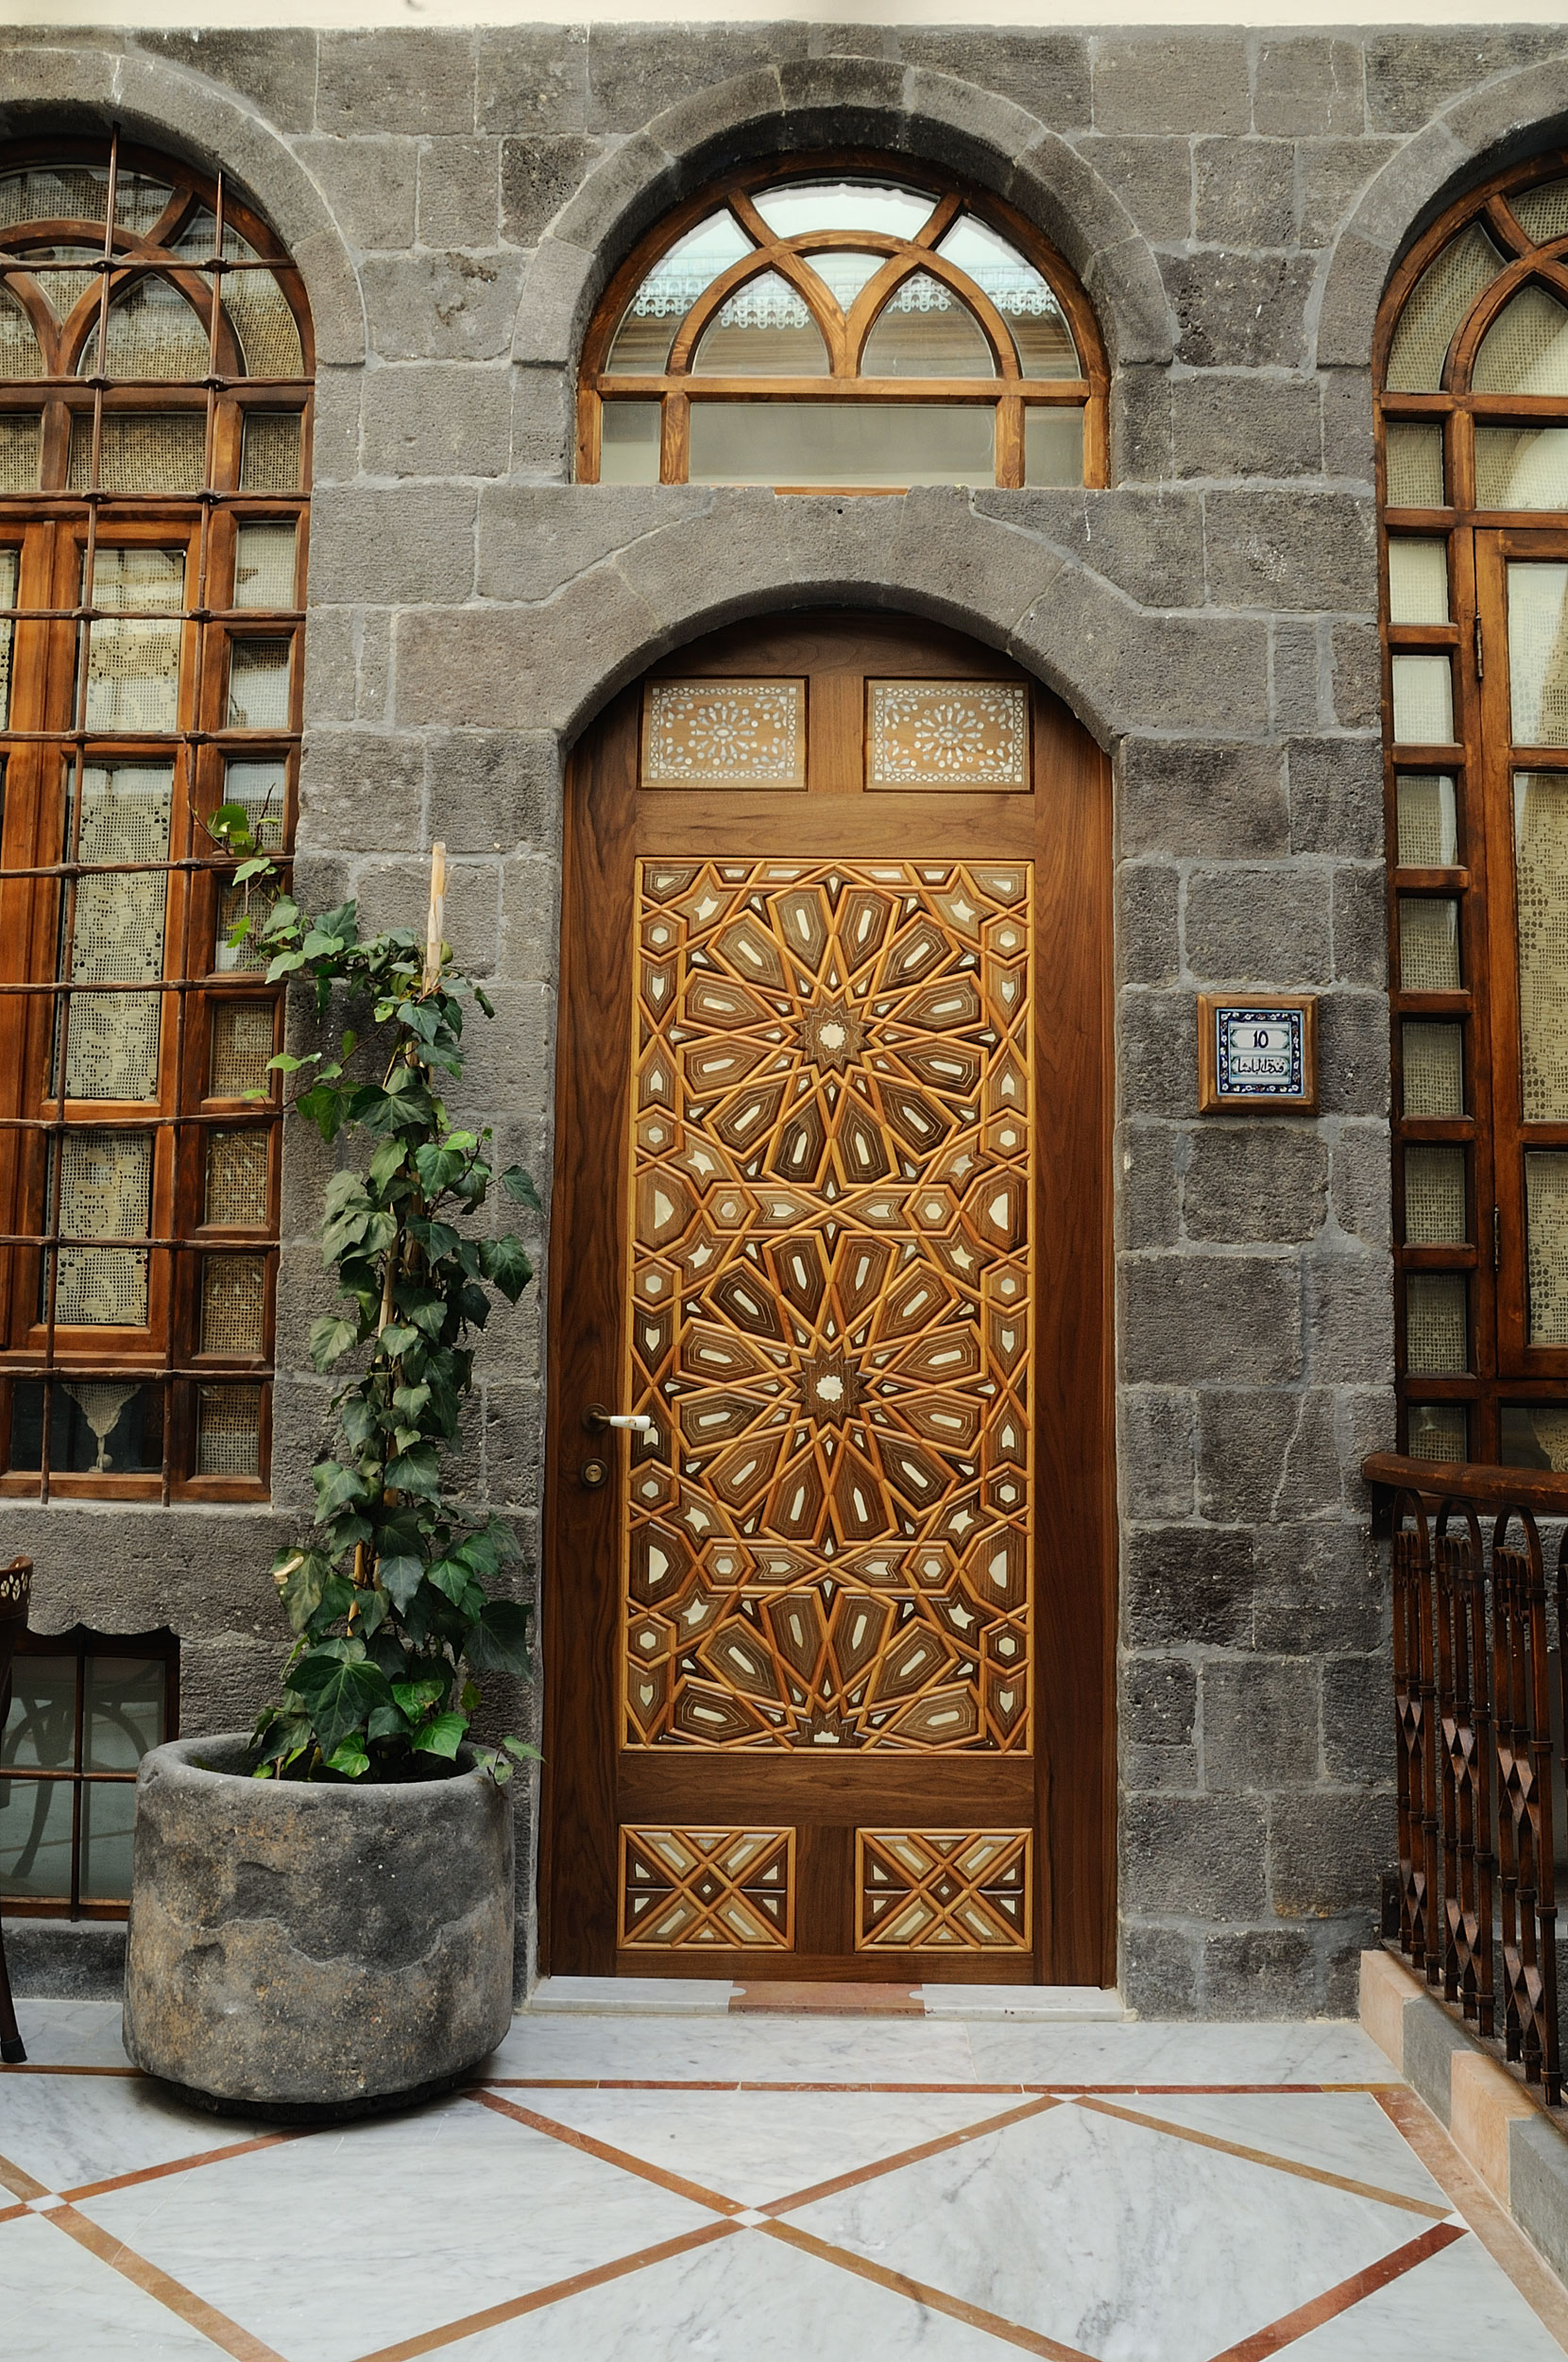 Al pasha hotel hotel reservation in damascus syria center for The damascus house